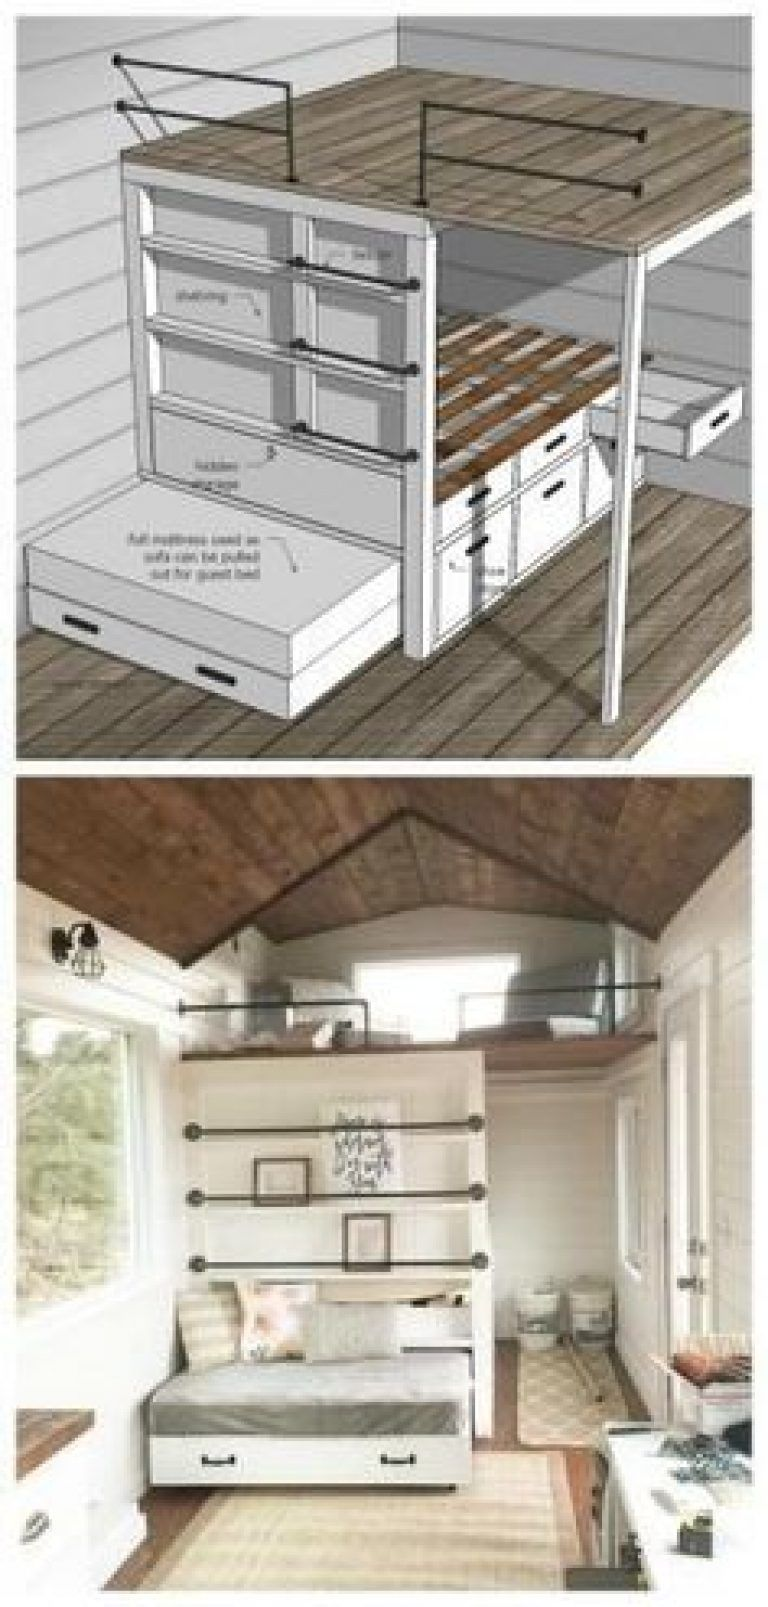 3 bedroom loft house  Tiny House Loft with Bedroom Guest Bed Storage and Shelving